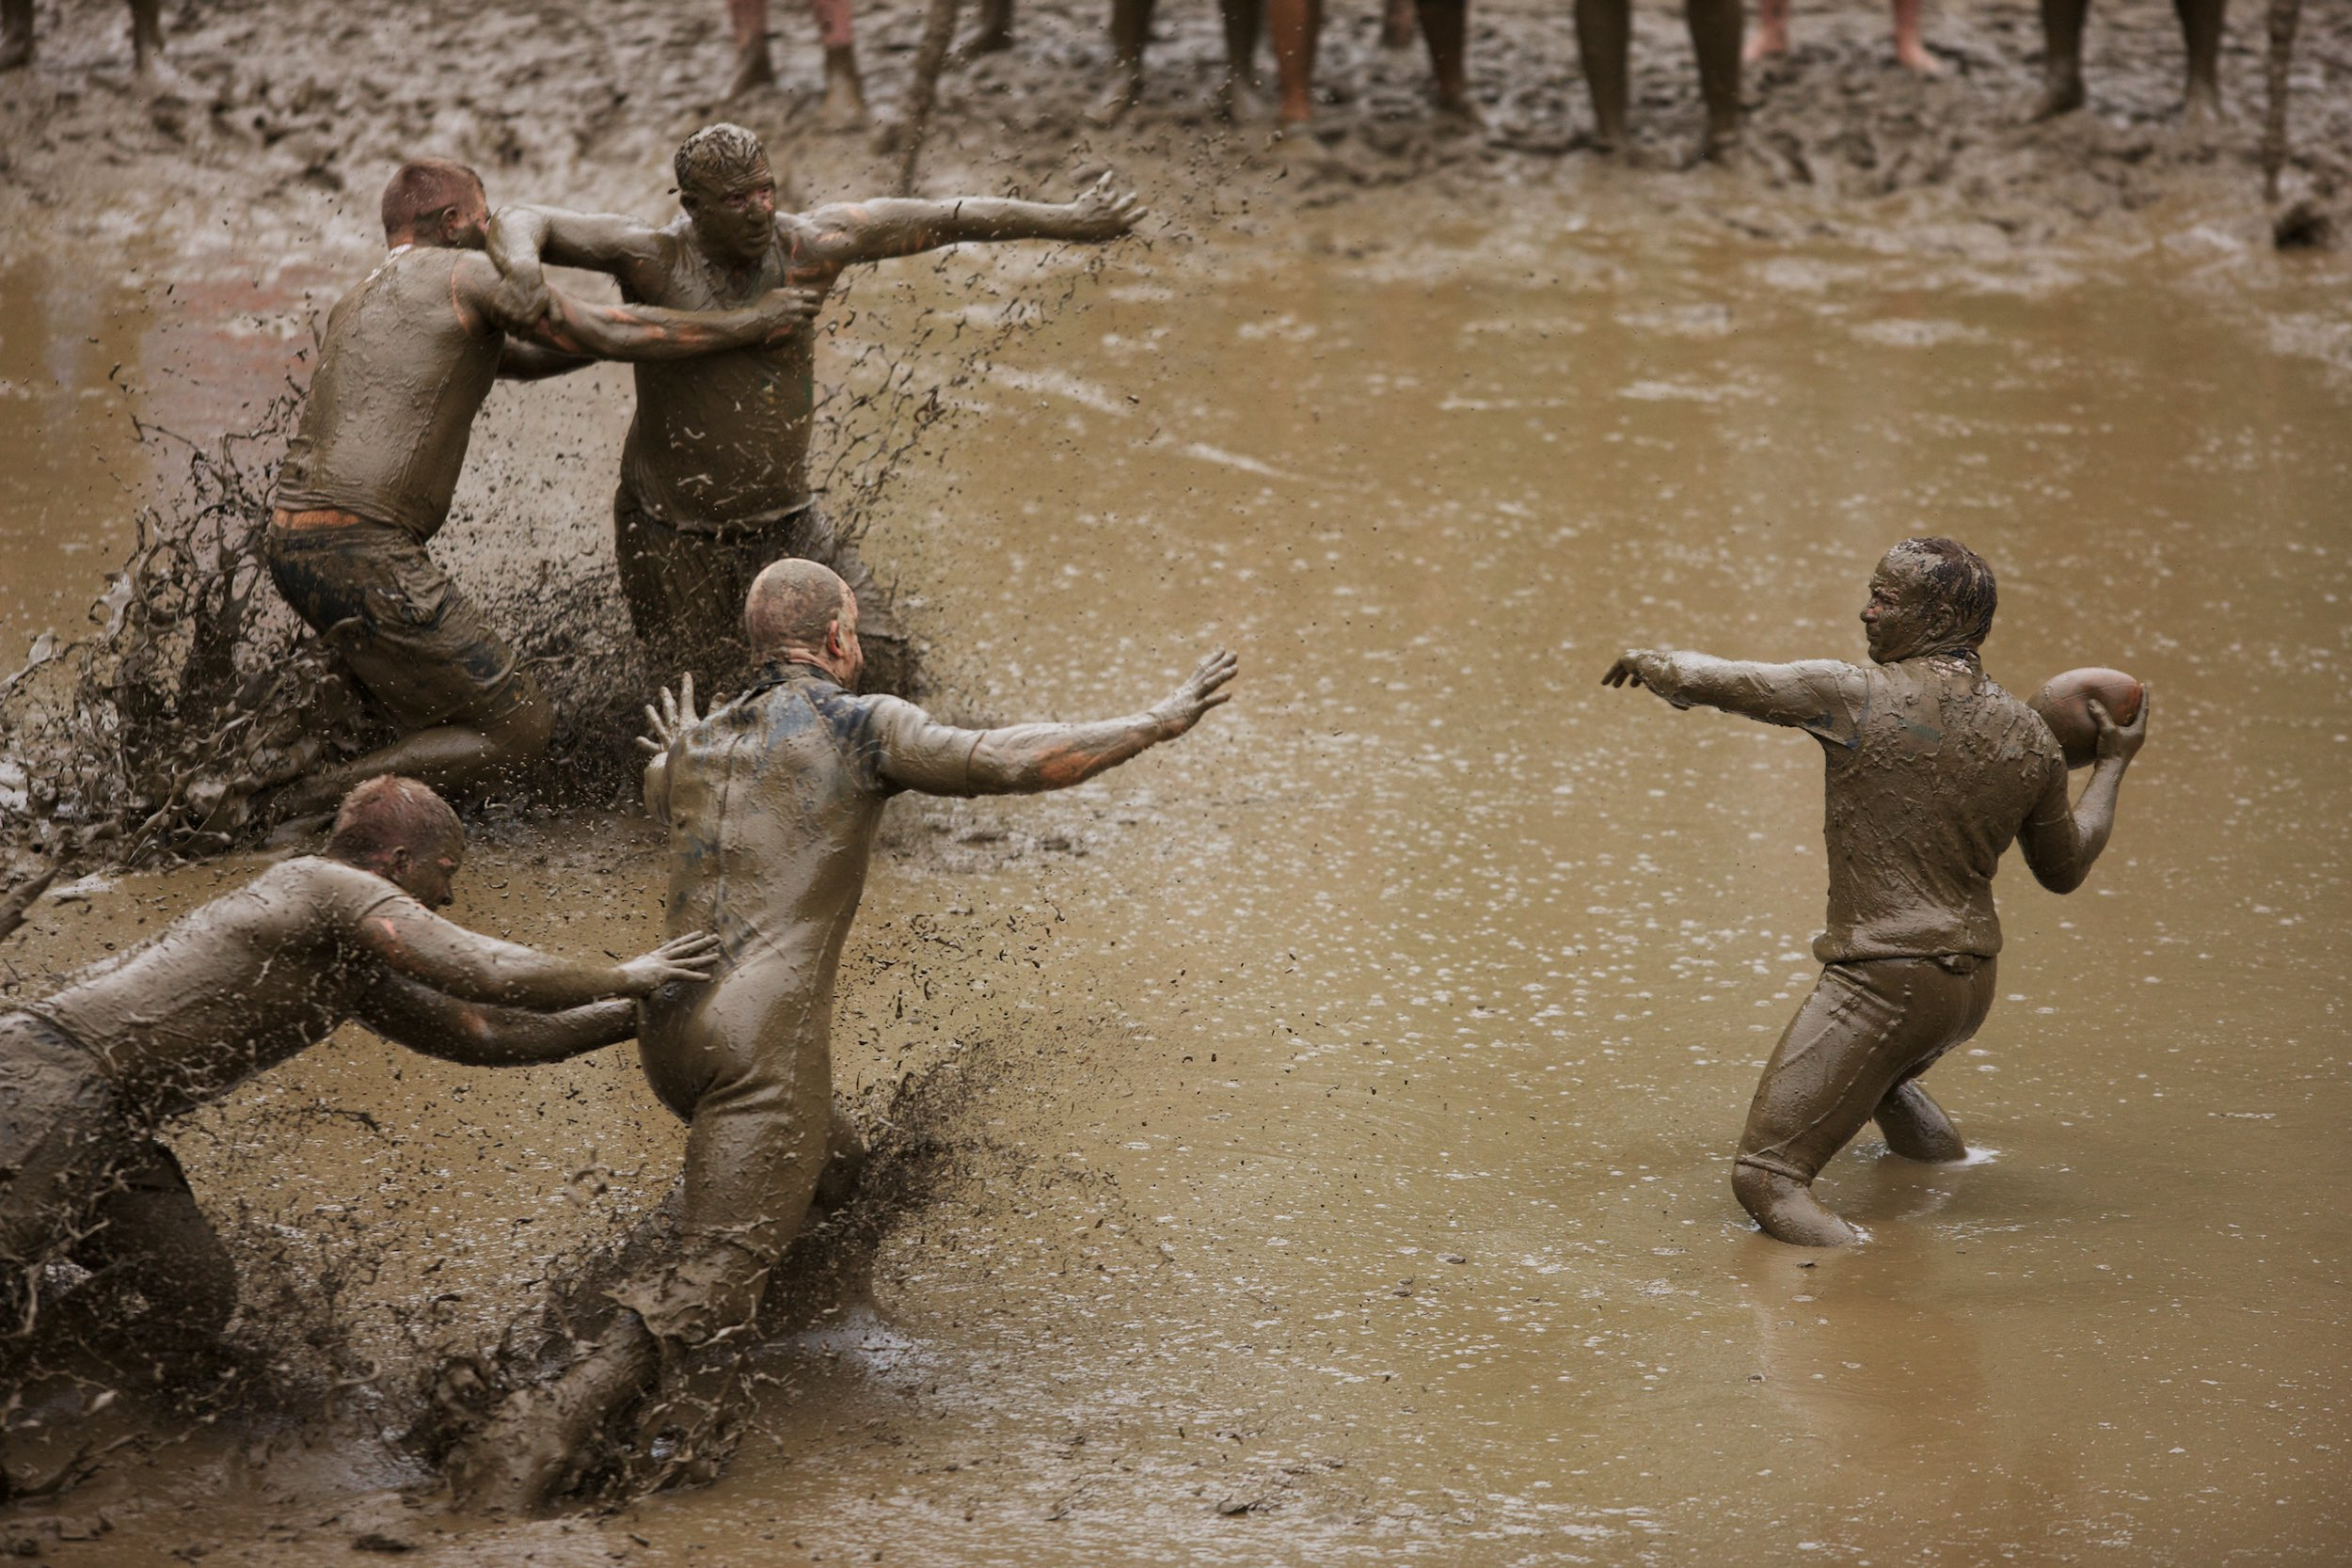 The annual Mud Bowl held at Hog Coliseum has been called the cleanest sport ever played in knee-deep mud.© Sol Neelman